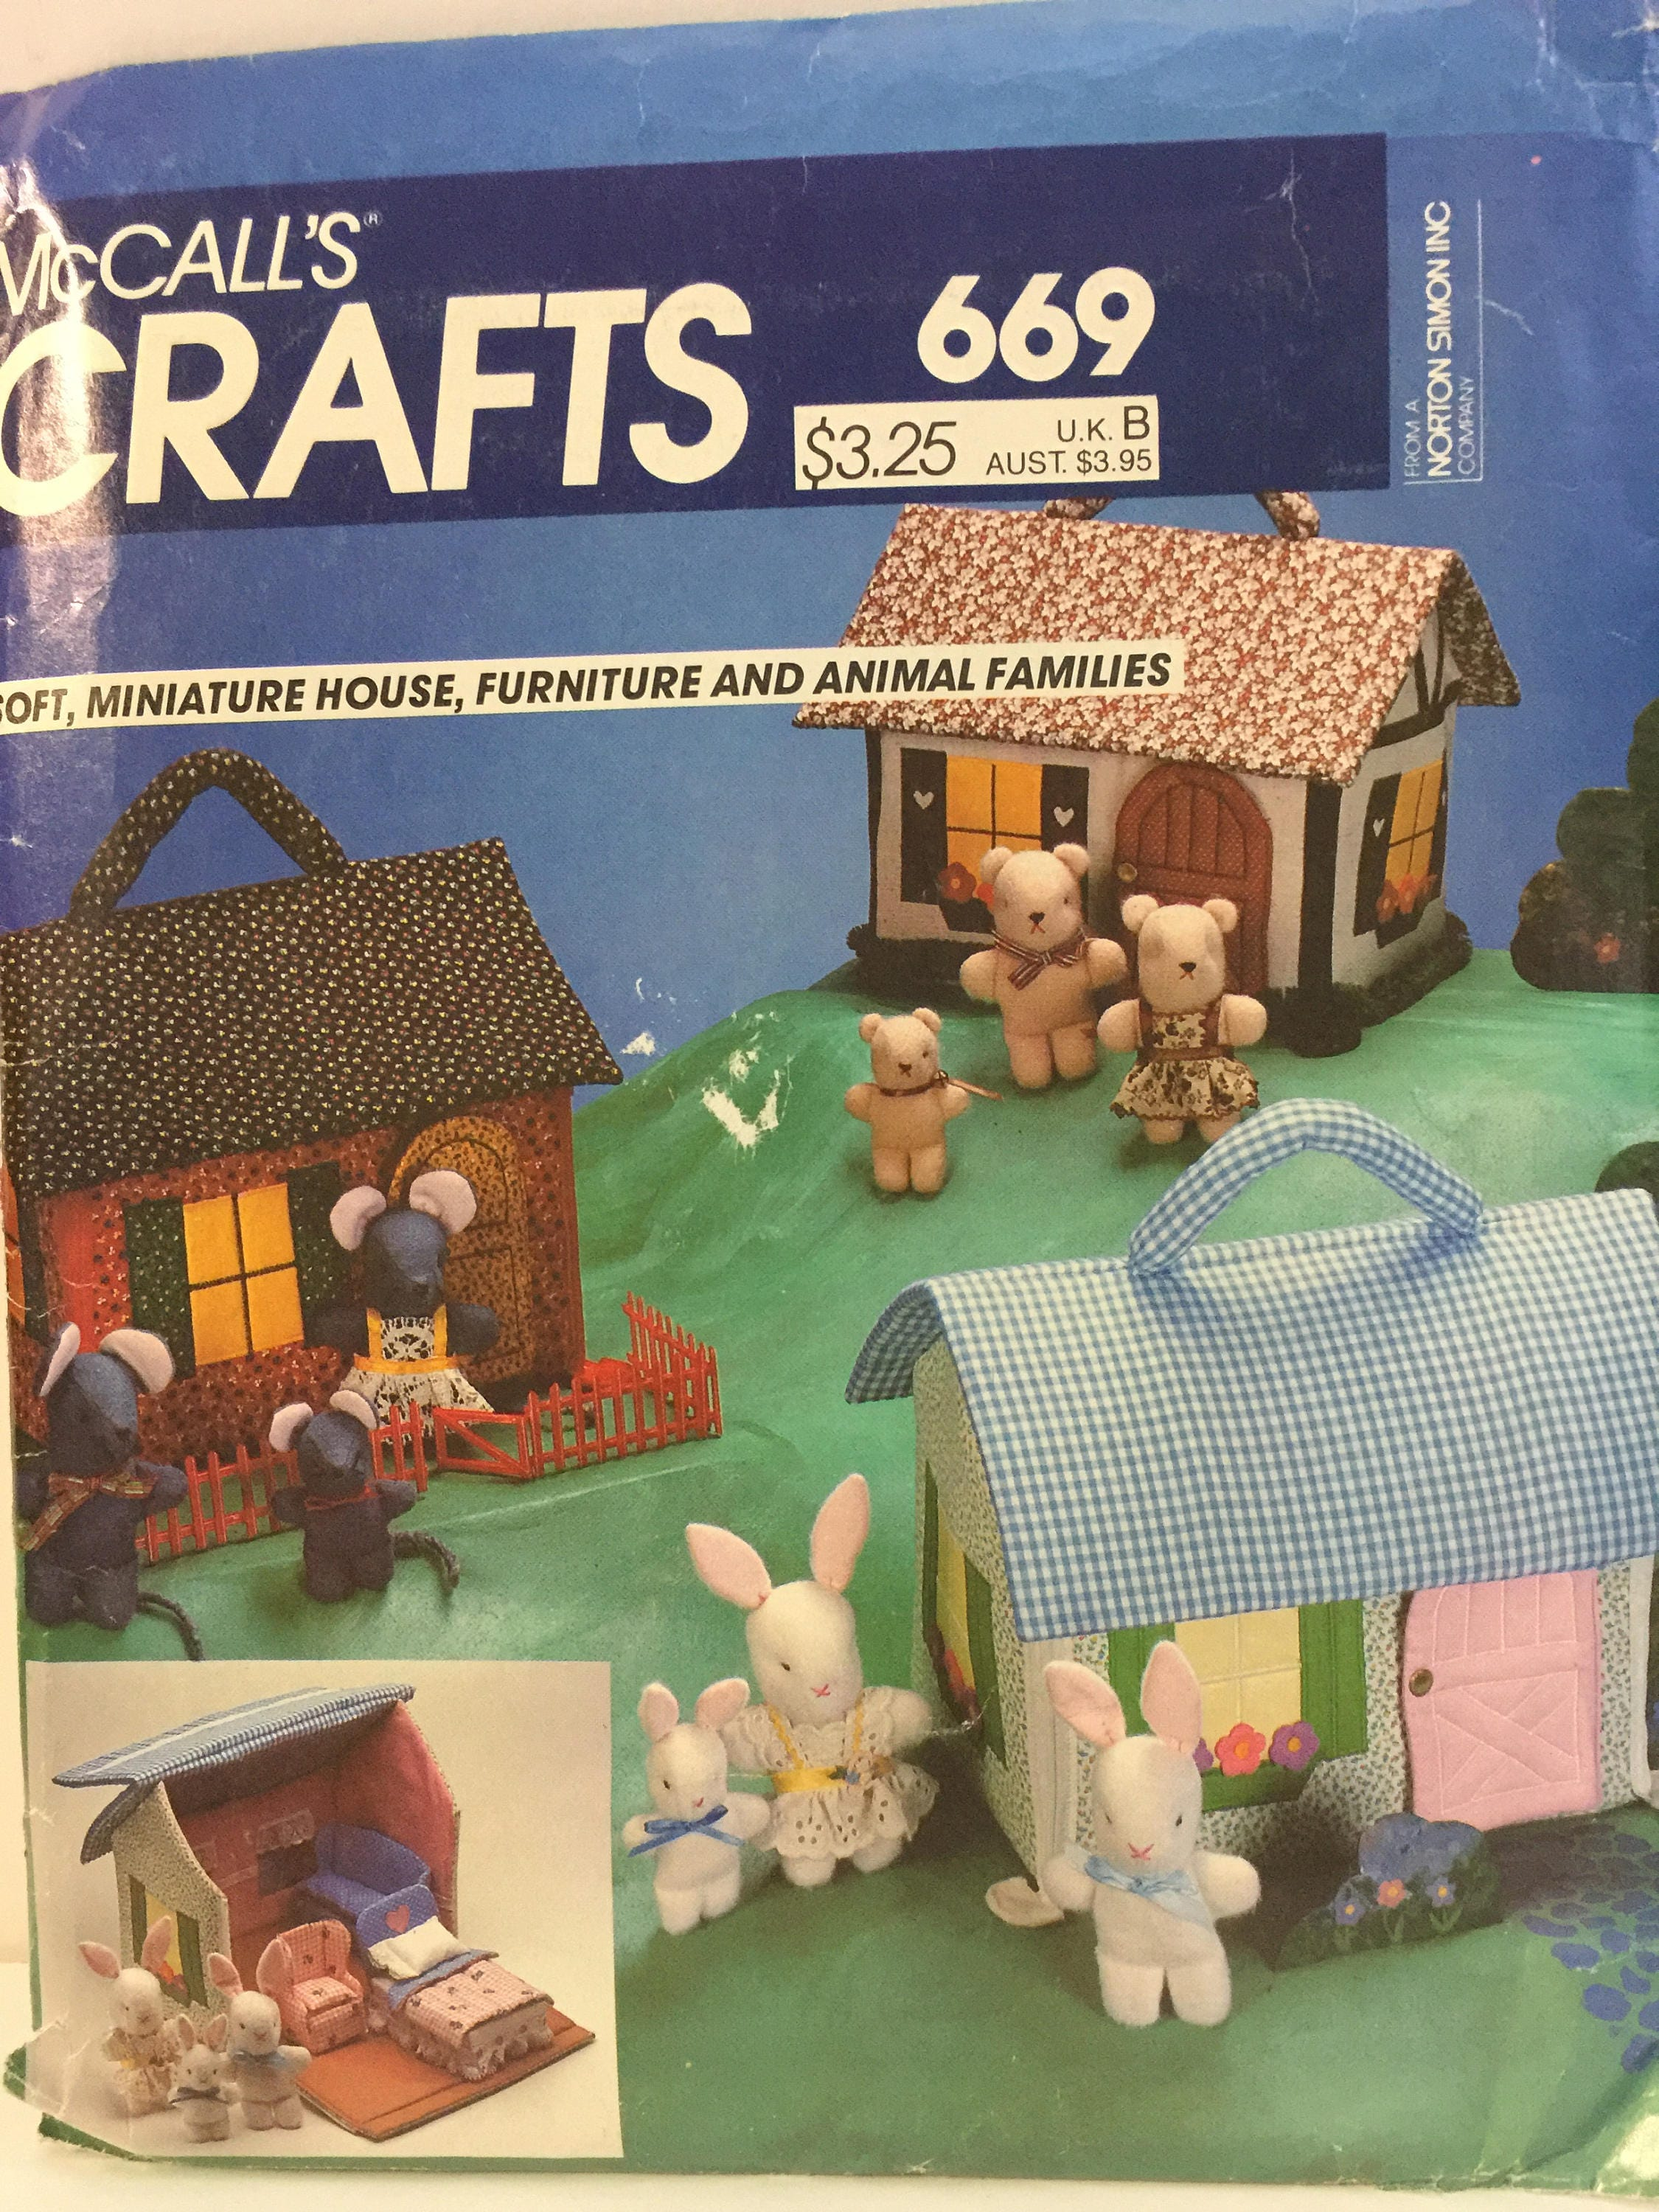 Miniature House Pattern Mccalls 669 Cloth Animals Mini Soft  # Muebles Full House Colombia